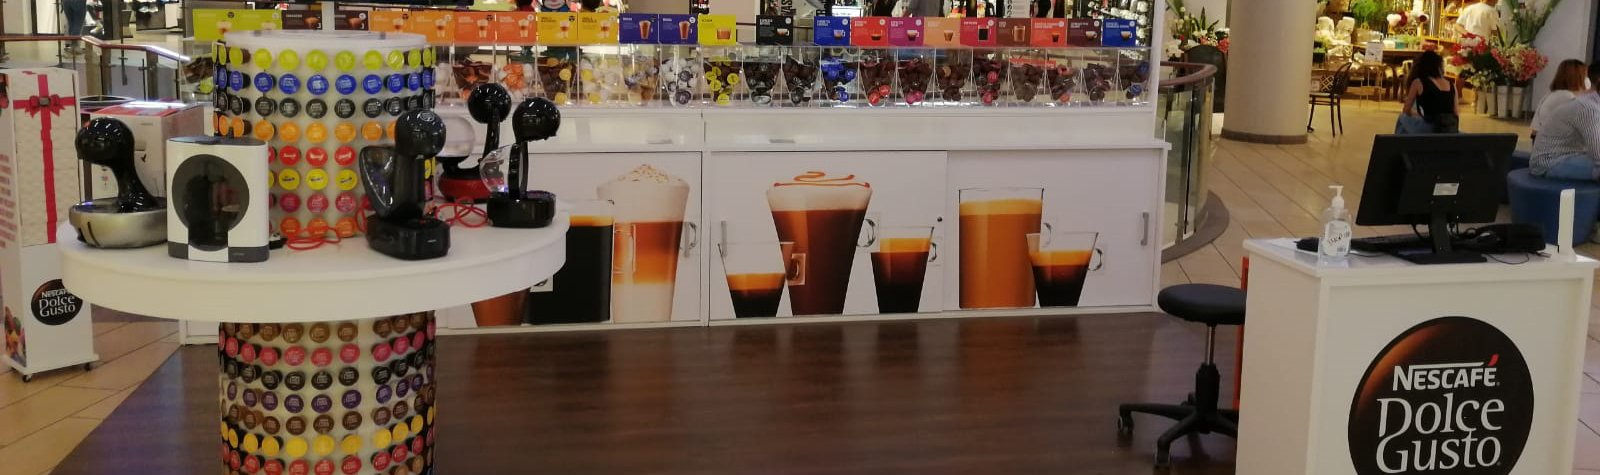 New Nescafe Dolce Gusto Stand at Tigné Point